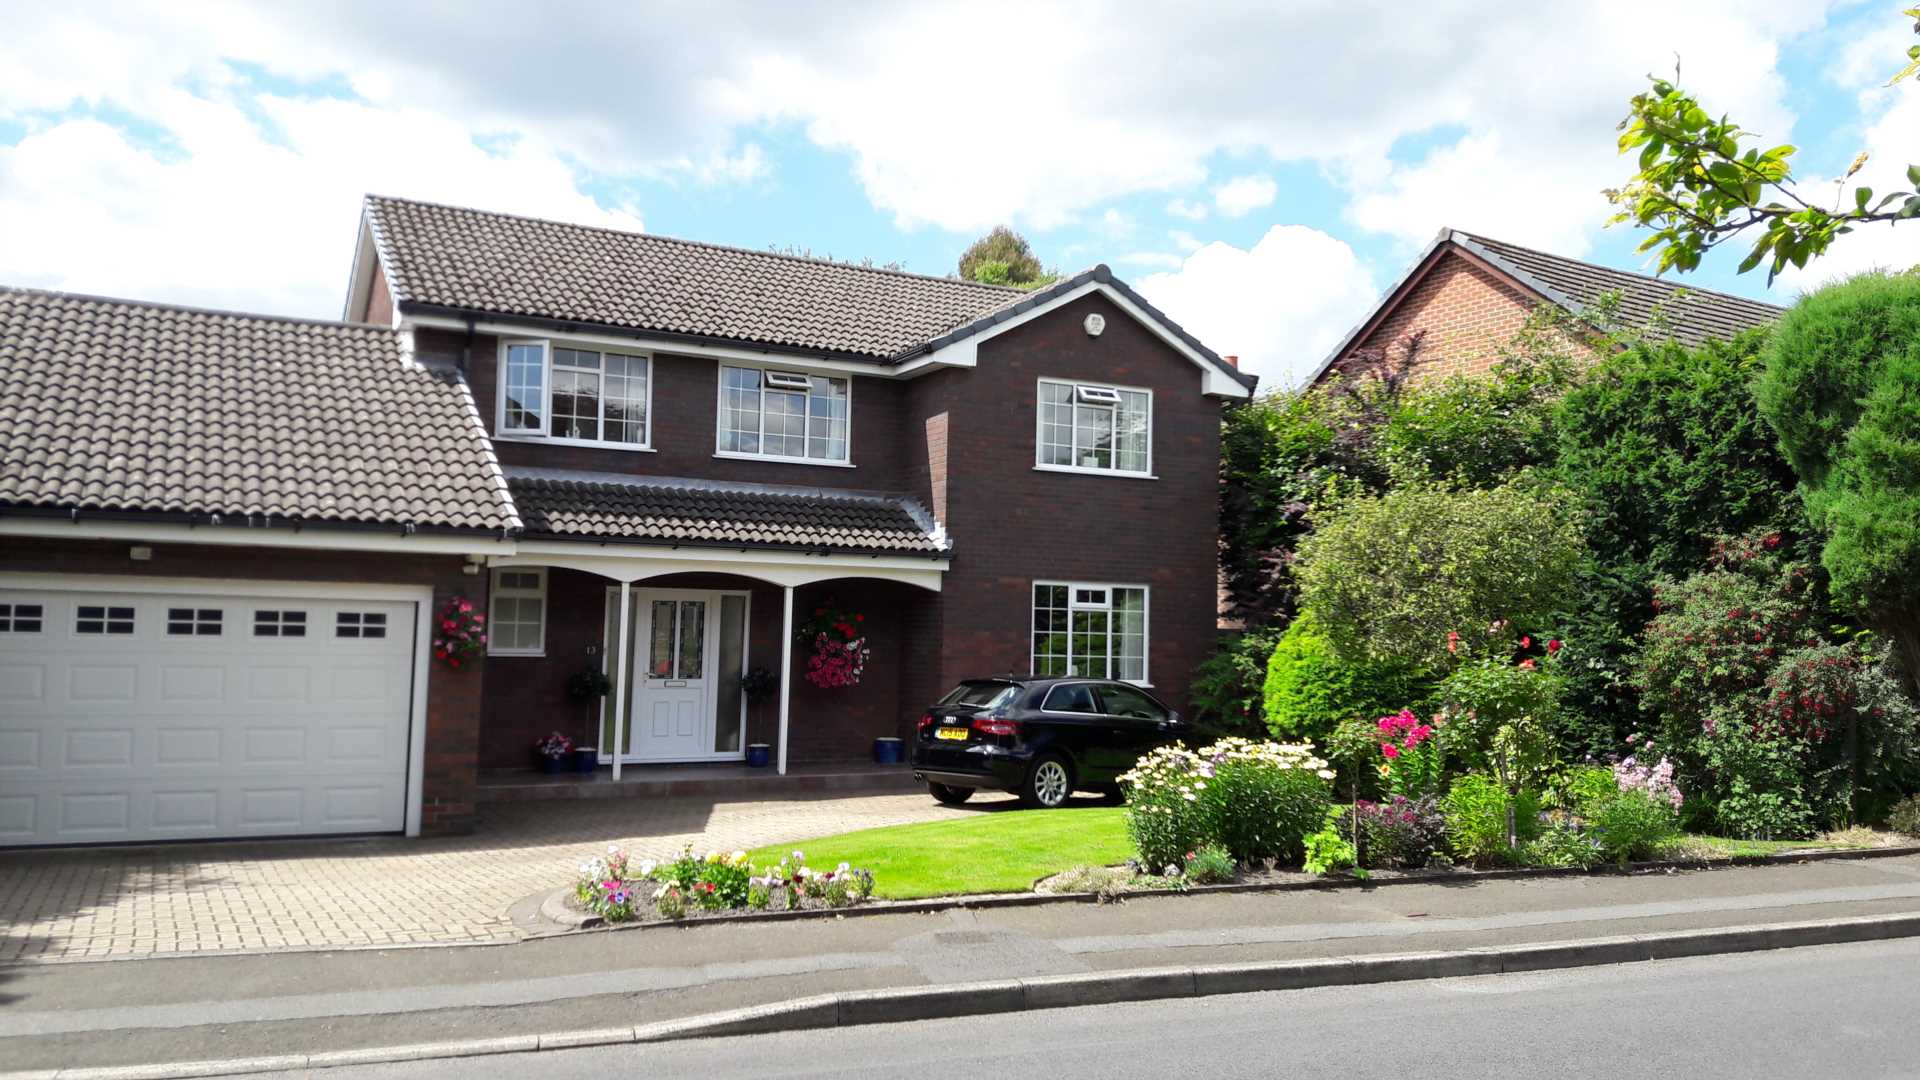 Redman Casey Estate Agency - 4 Bedroom Detached, Briksdal Way, Lostock